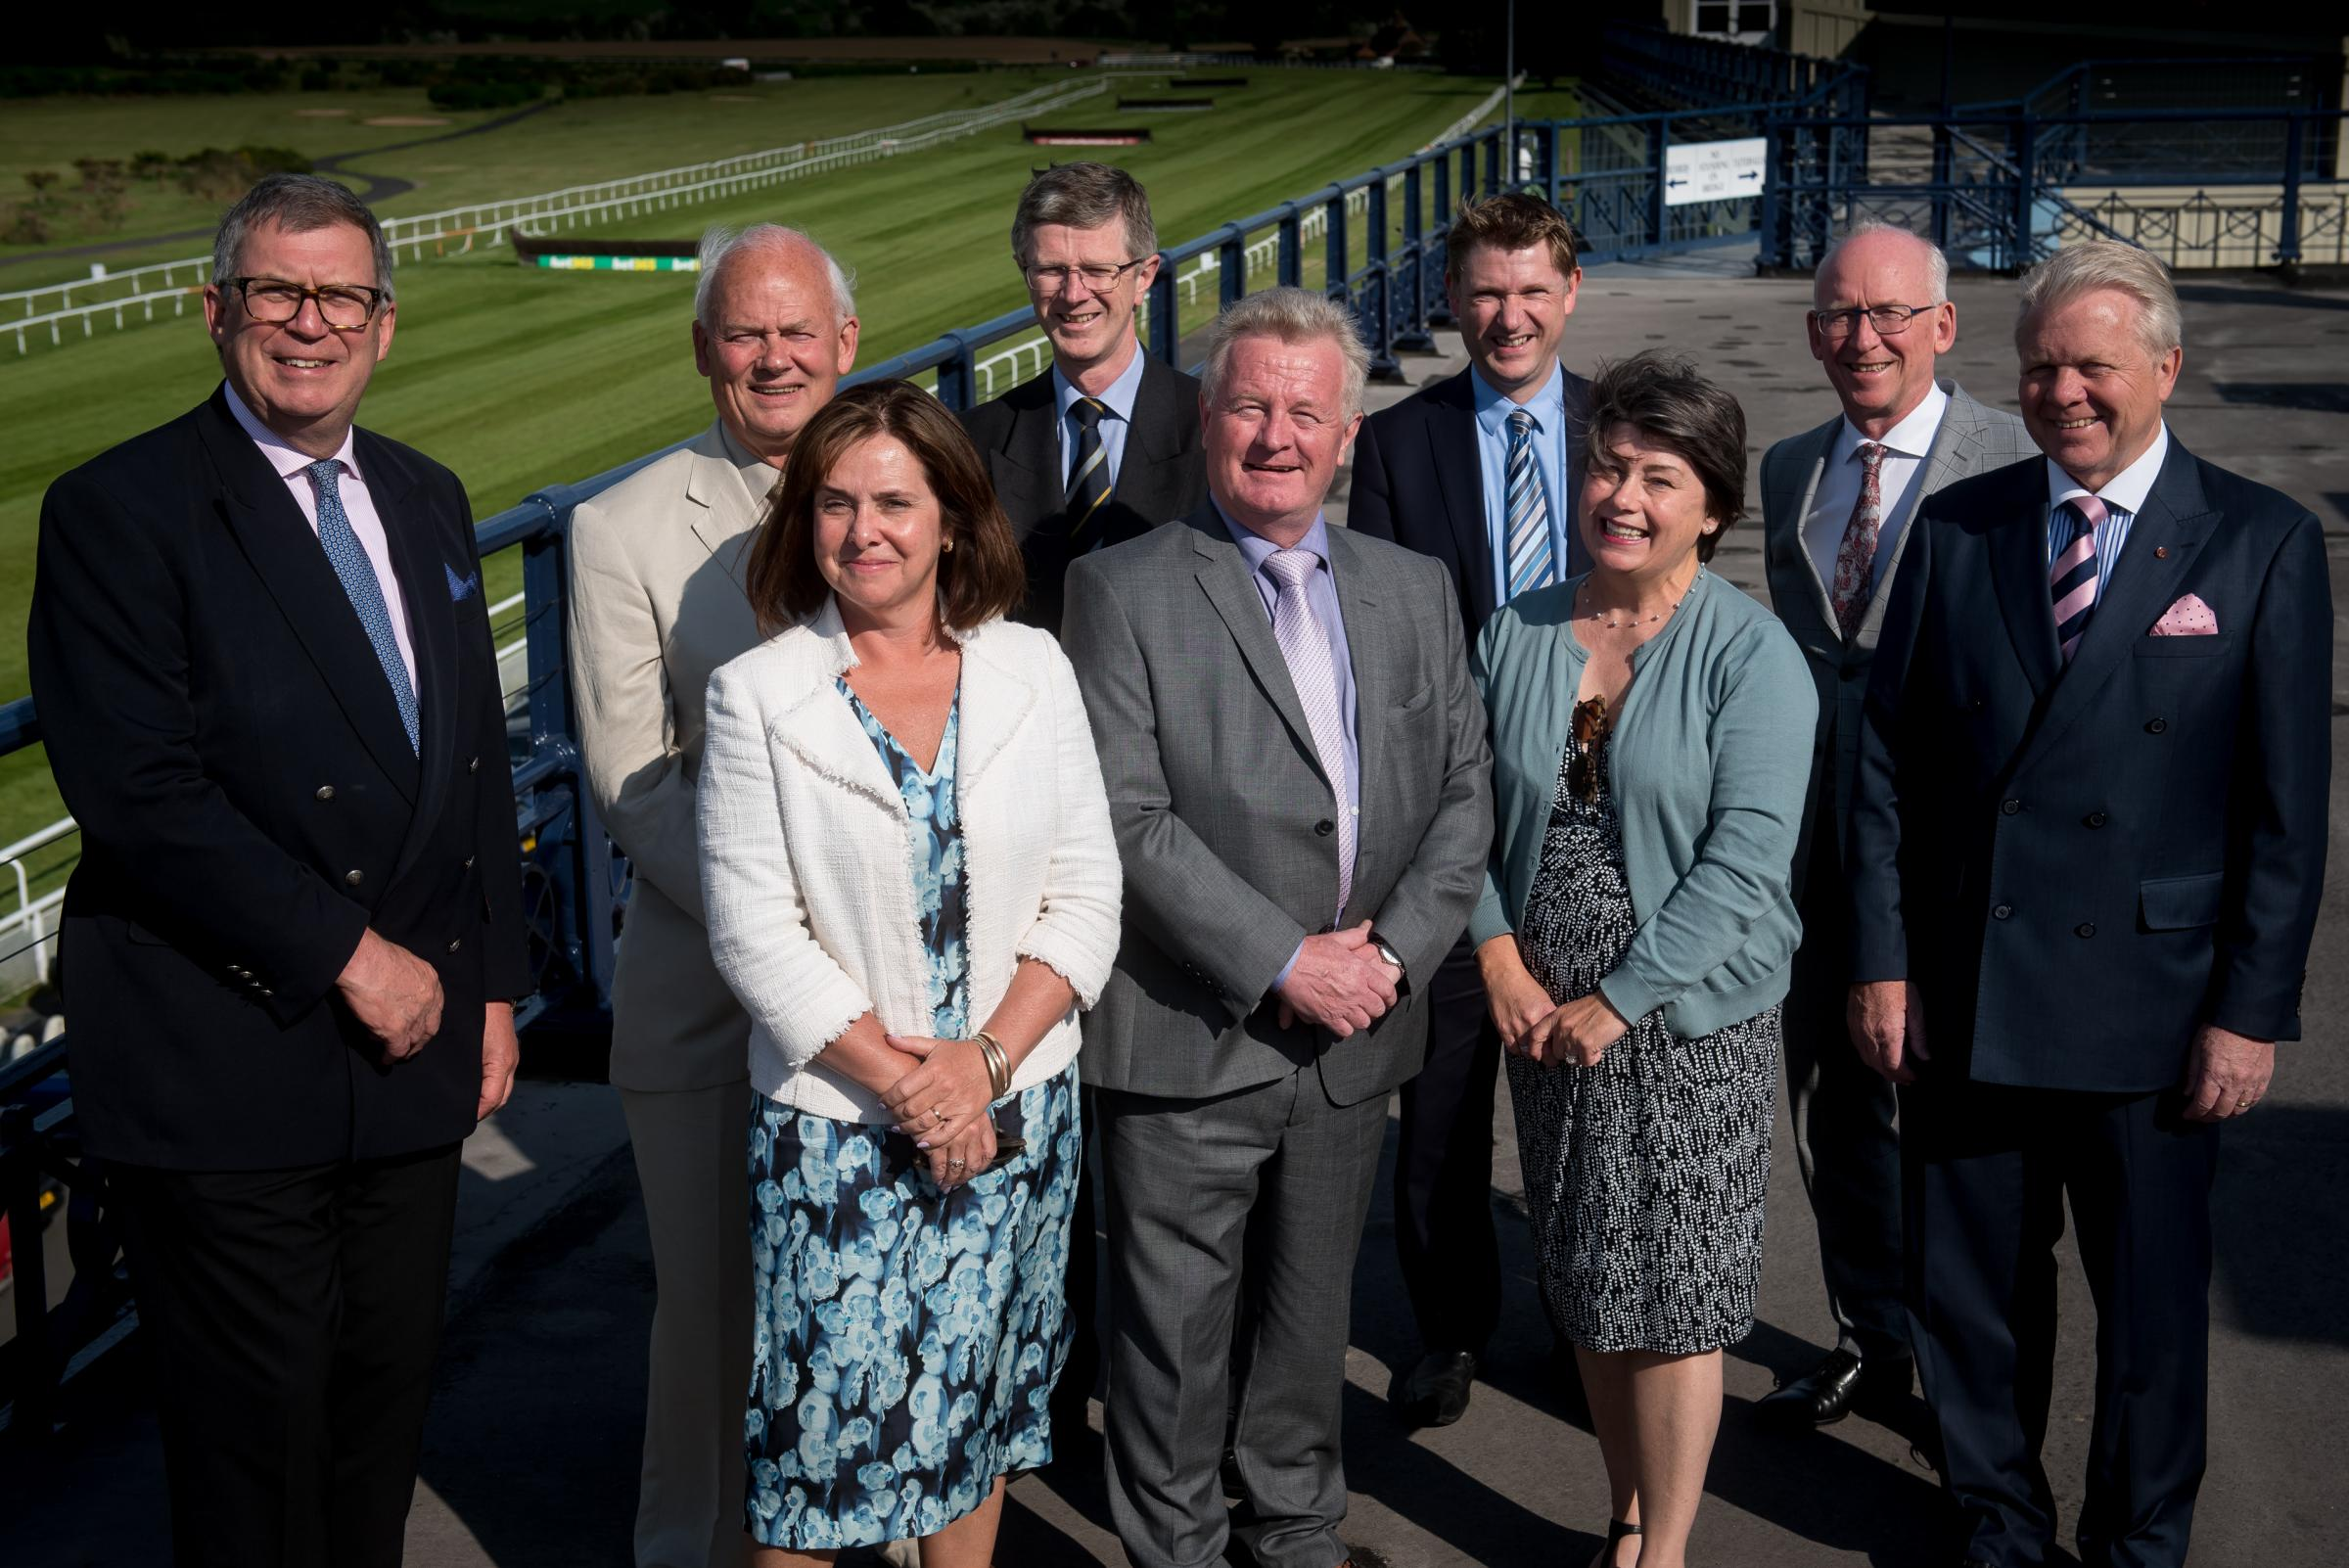 Marches LEP board members will launch their annual report at the House of Commons. From left, Andrew Manning Cox, Frank Myers, Mandy Thorn, David Llewellyn, Paul Hinkins, James Staniforth, Sonia Roberts, Paul Kalinauckas and chairman Graham Wynn.